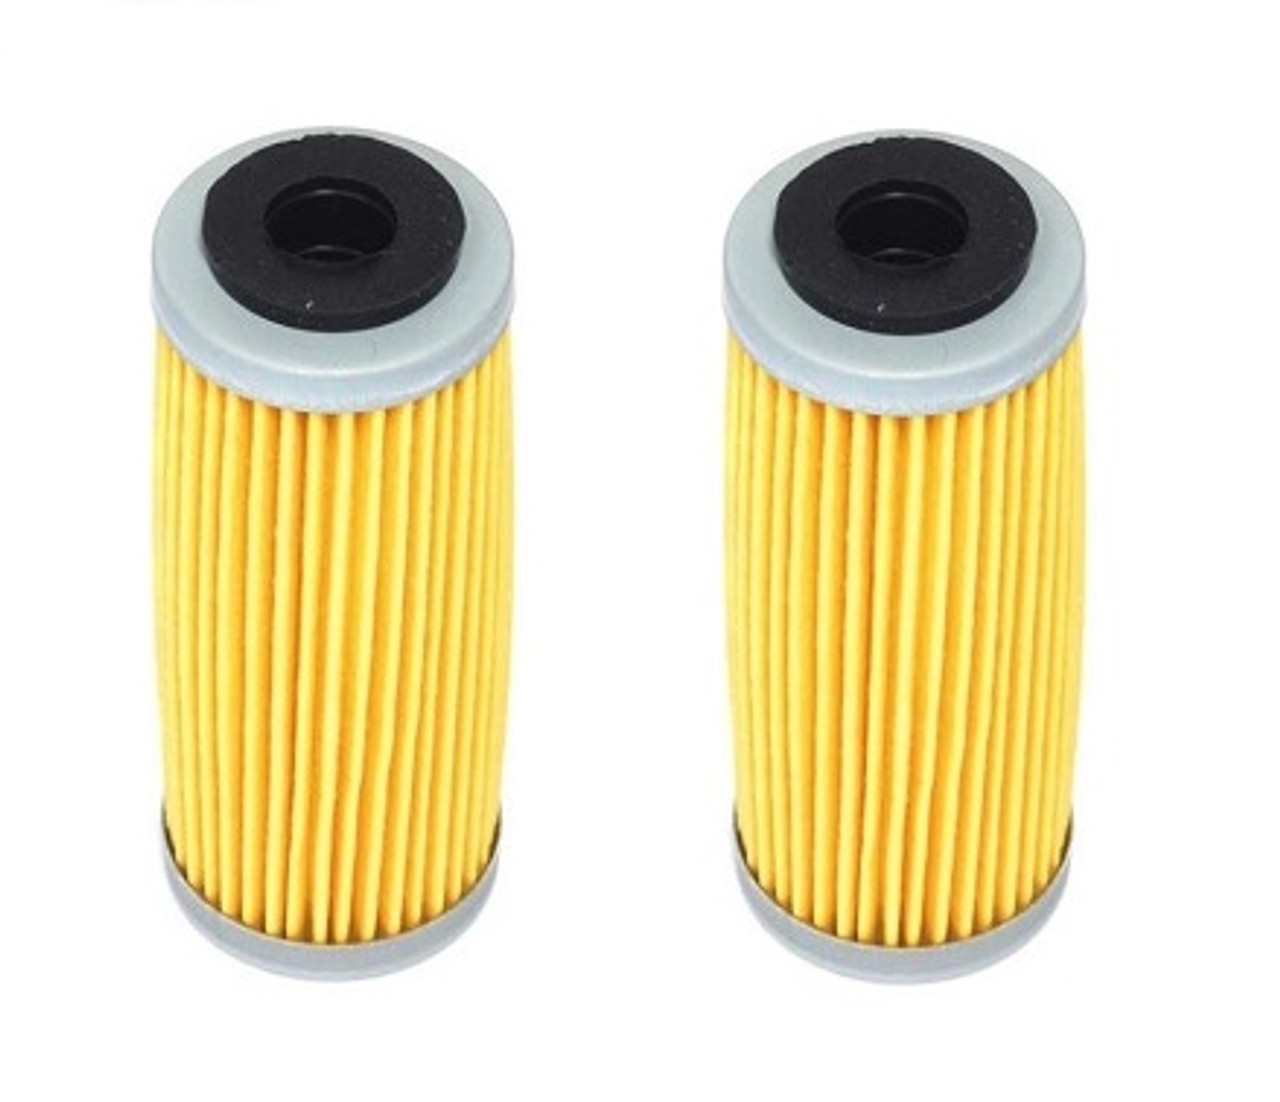 KTM 250 SX-F 2006-2022 OIL FILTERS 2 PACK ATHENA